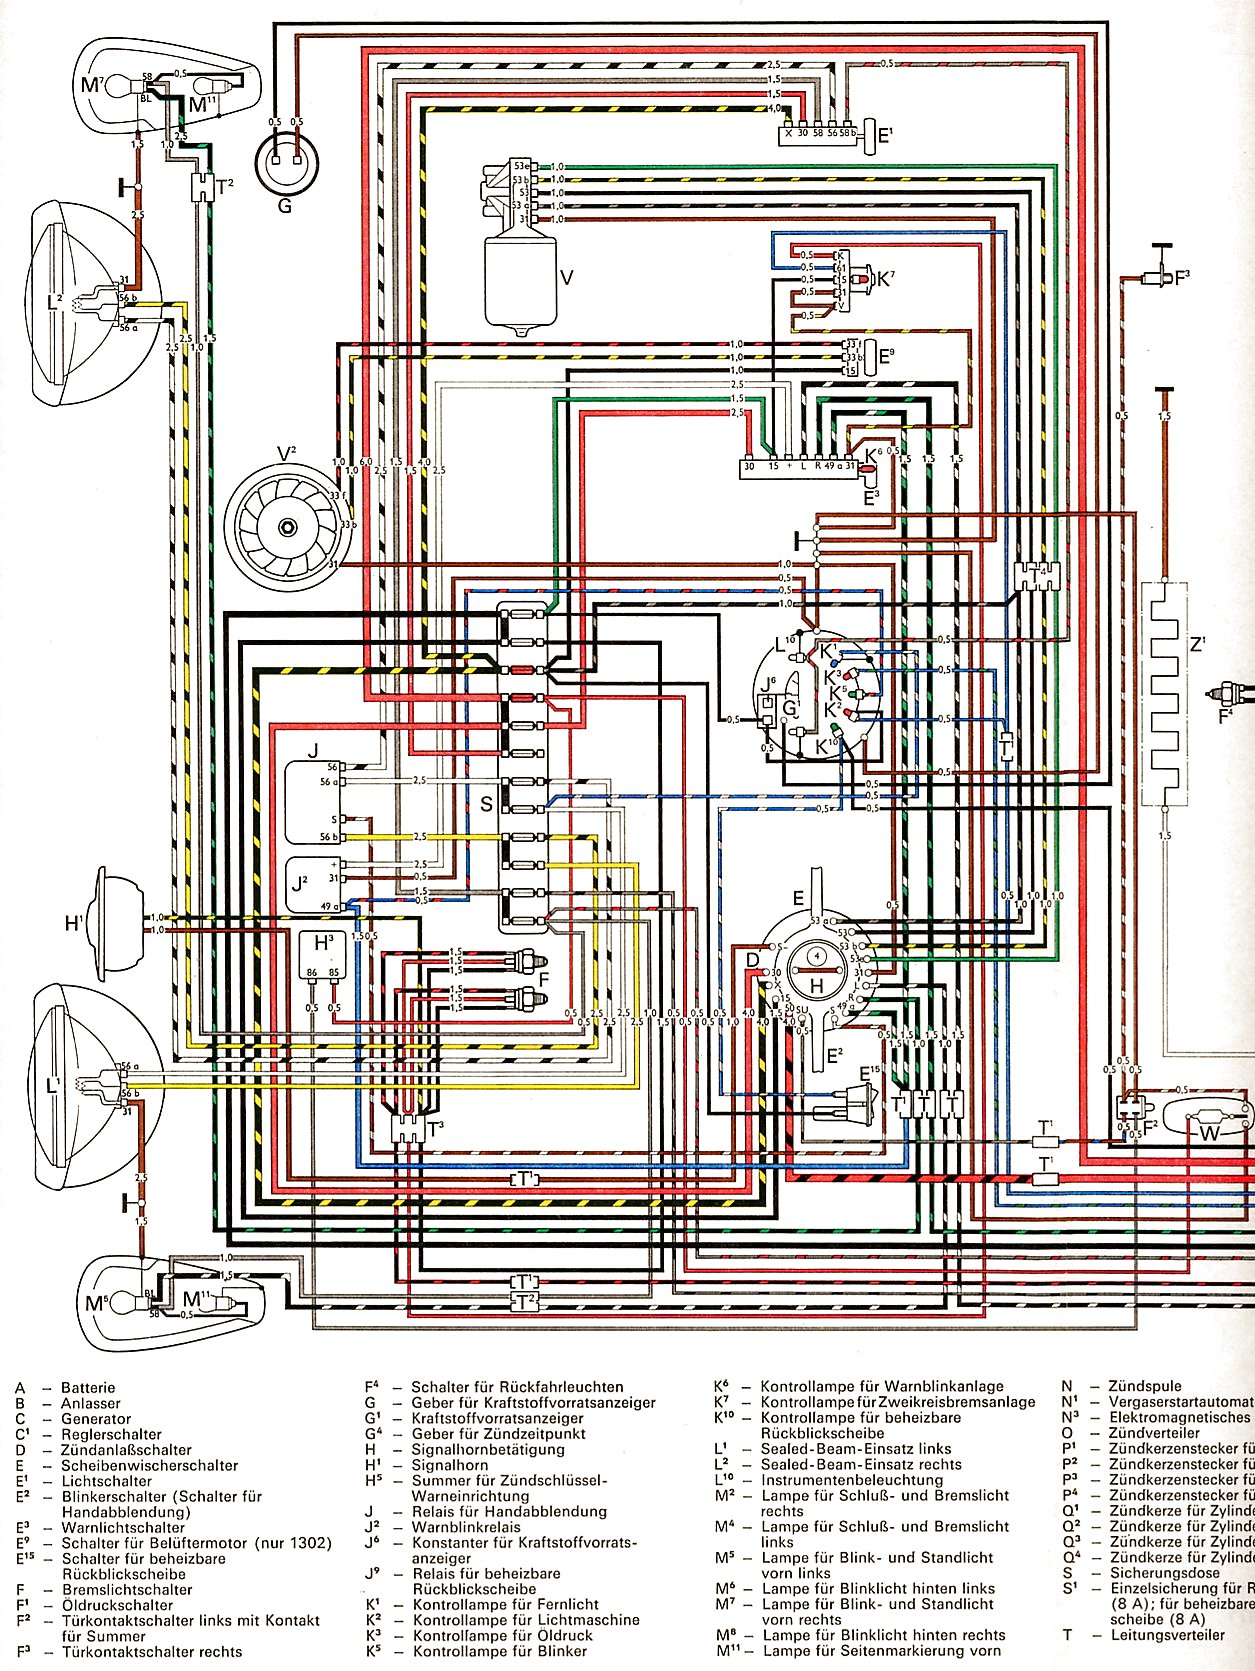 1300_and_1302_USA_from_August_1971 1 vw bug wiring 1969 vw starter wiring diagram \u2022 wiring diagrams j 1971 vw bus wiring diagram at love-stories.co